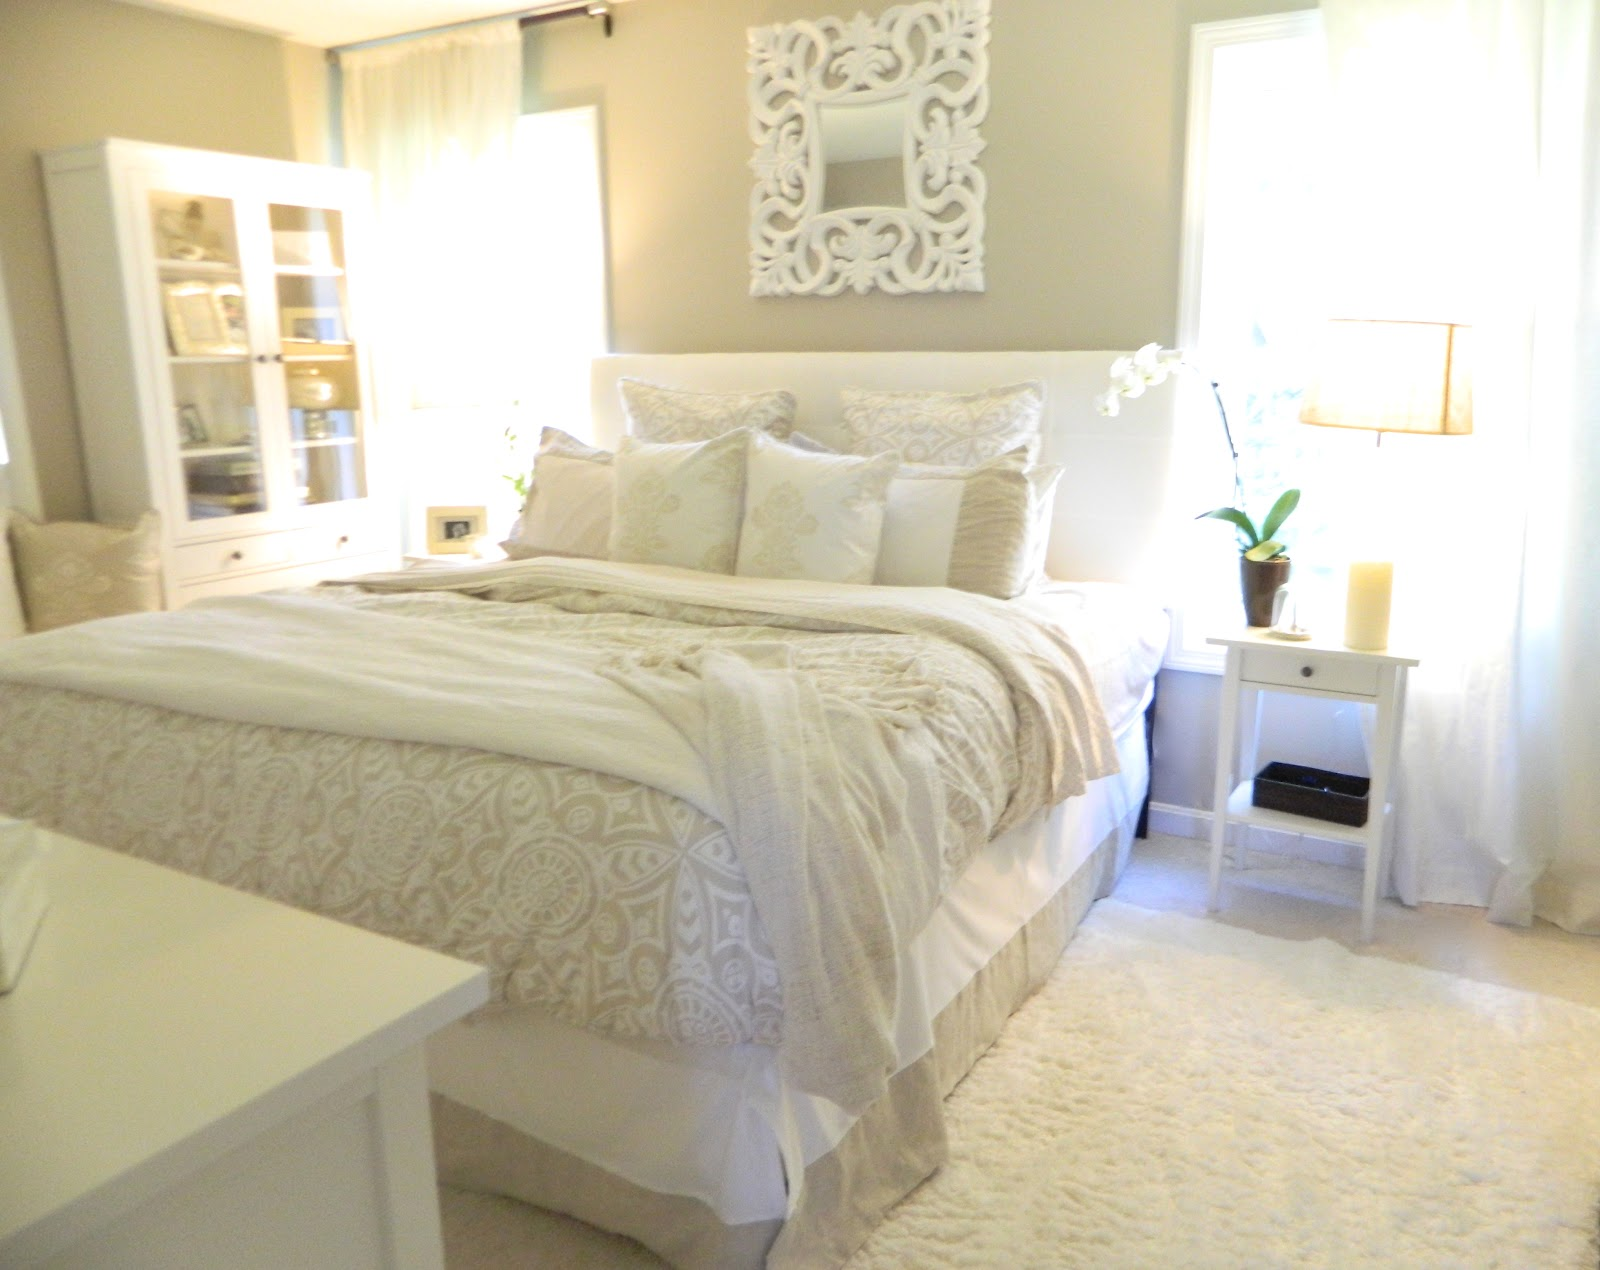 Peaceful home decor our romantic and peaceful masterbedroom originally posted july 6 2012 - Bedrooms decoration ...